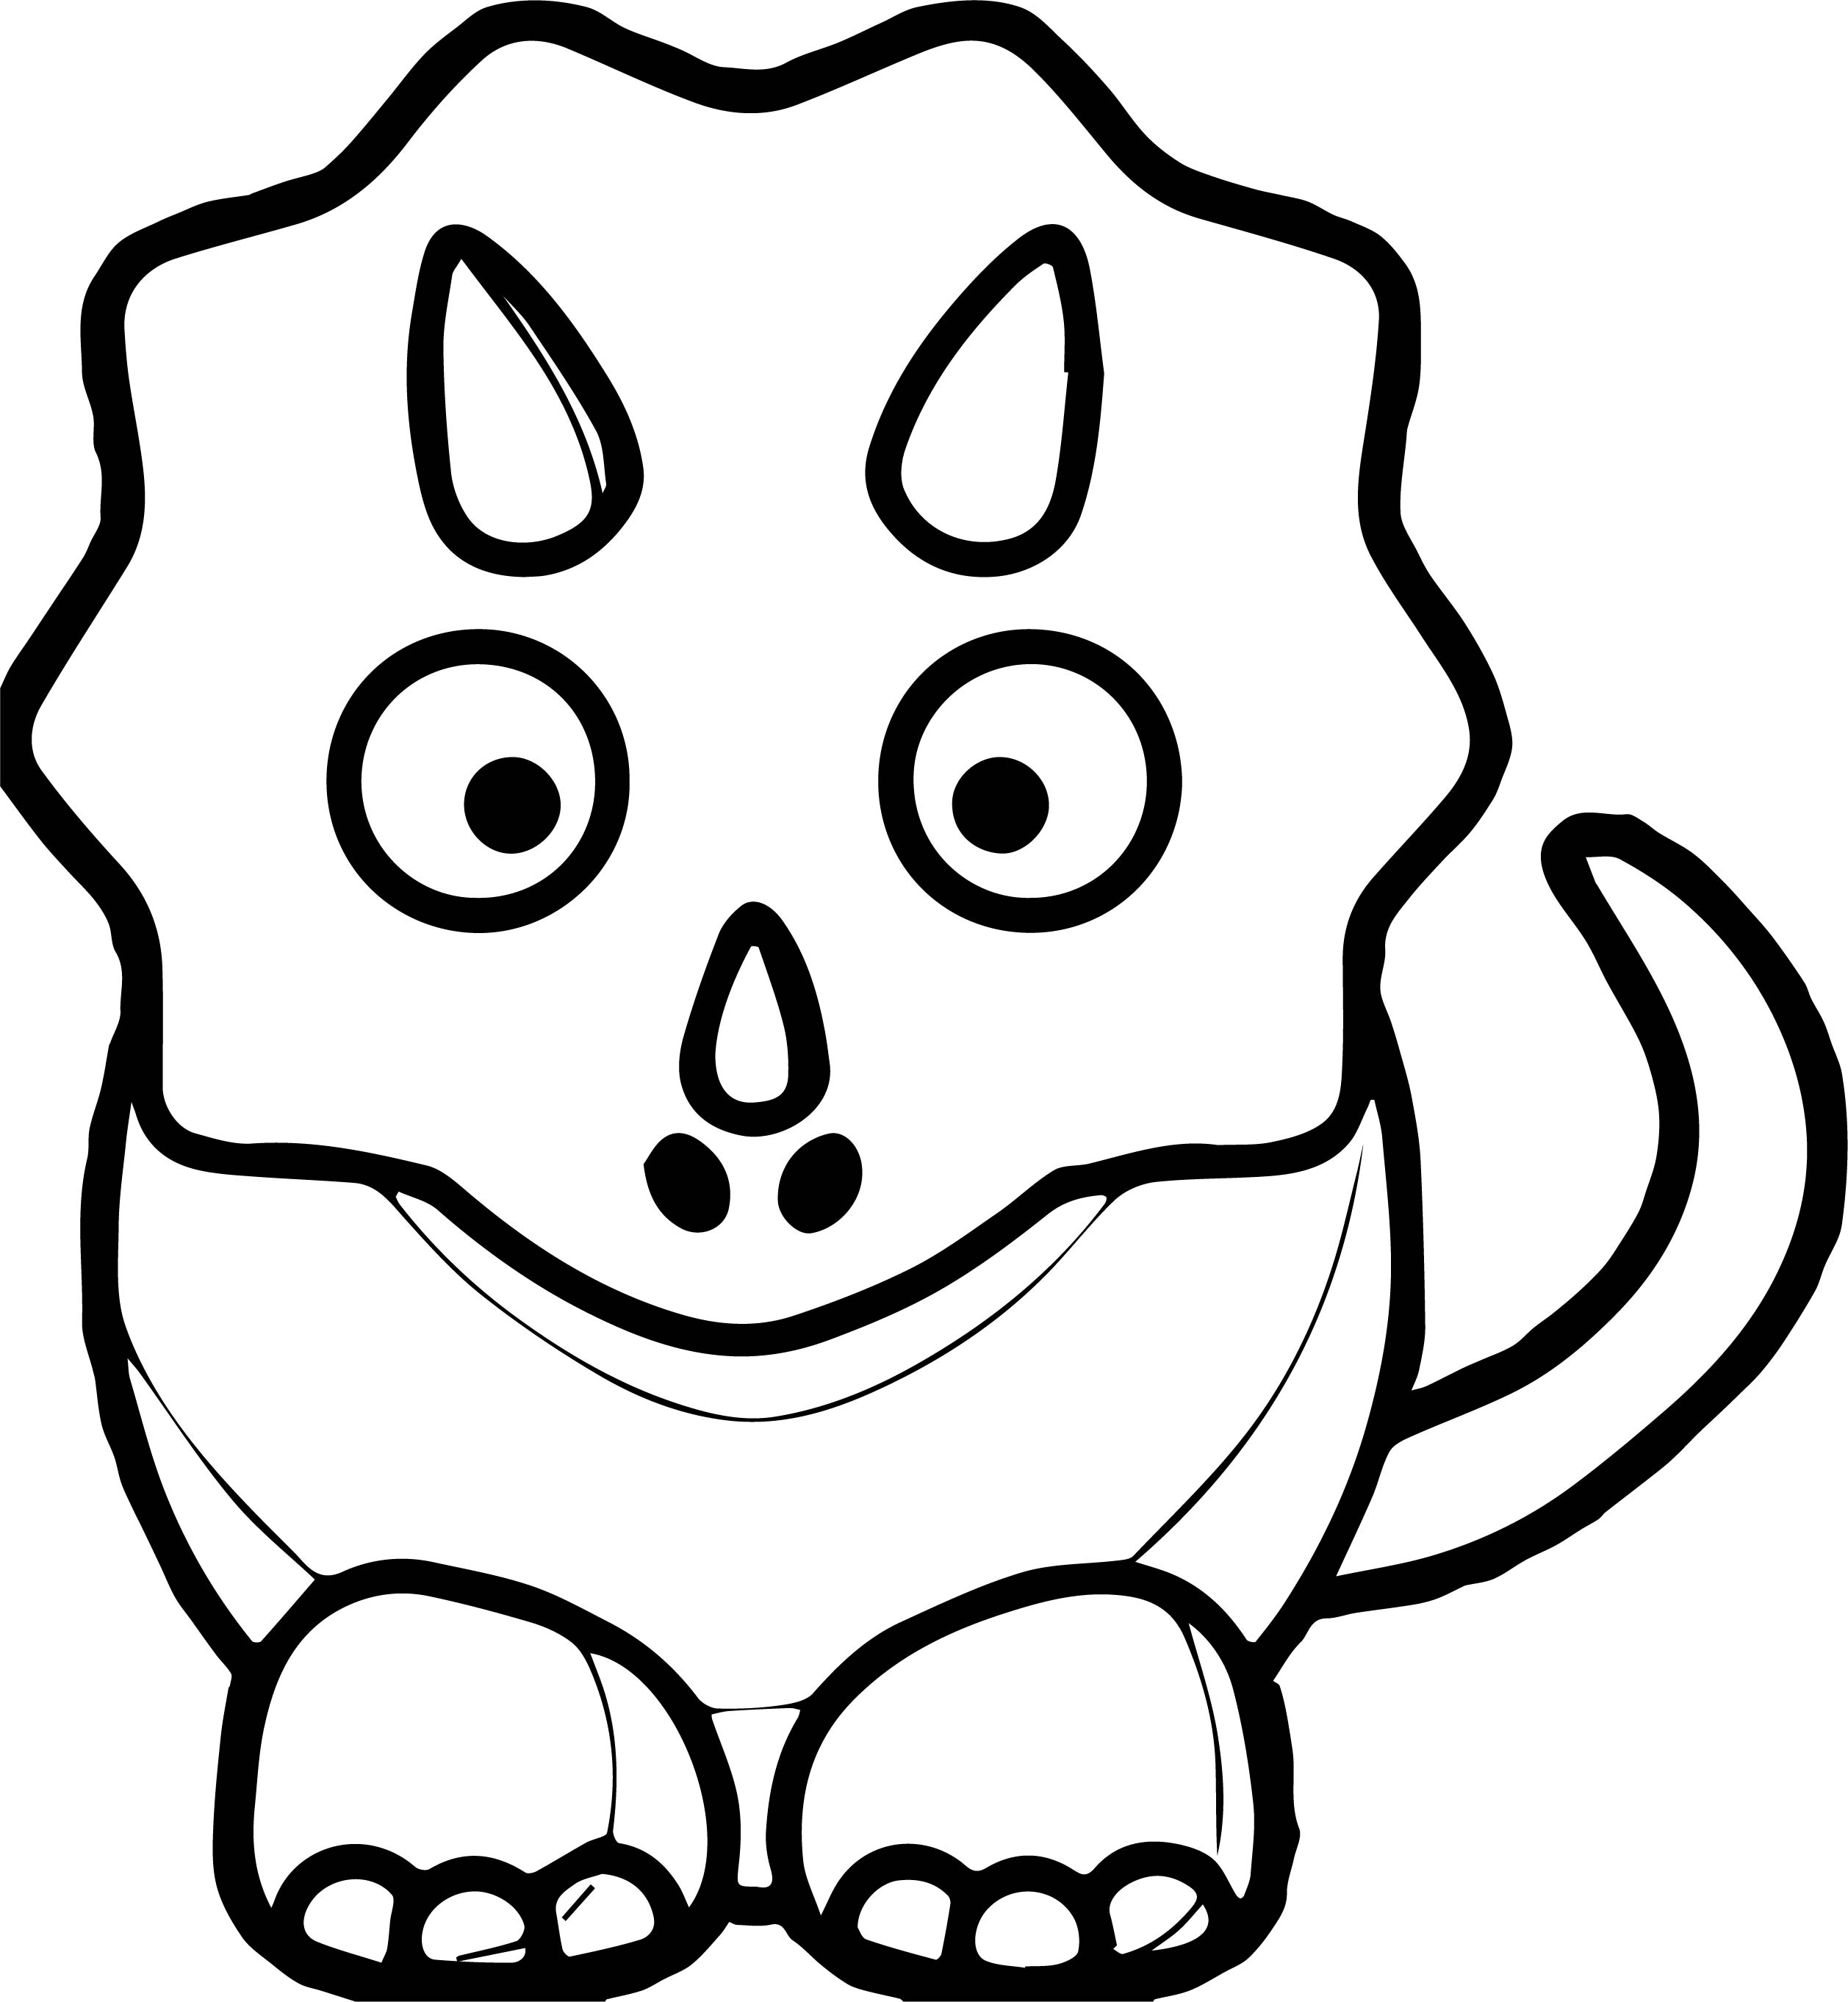 Dinosaur Coloring Page Cute Dinosaur roary the race car games ...